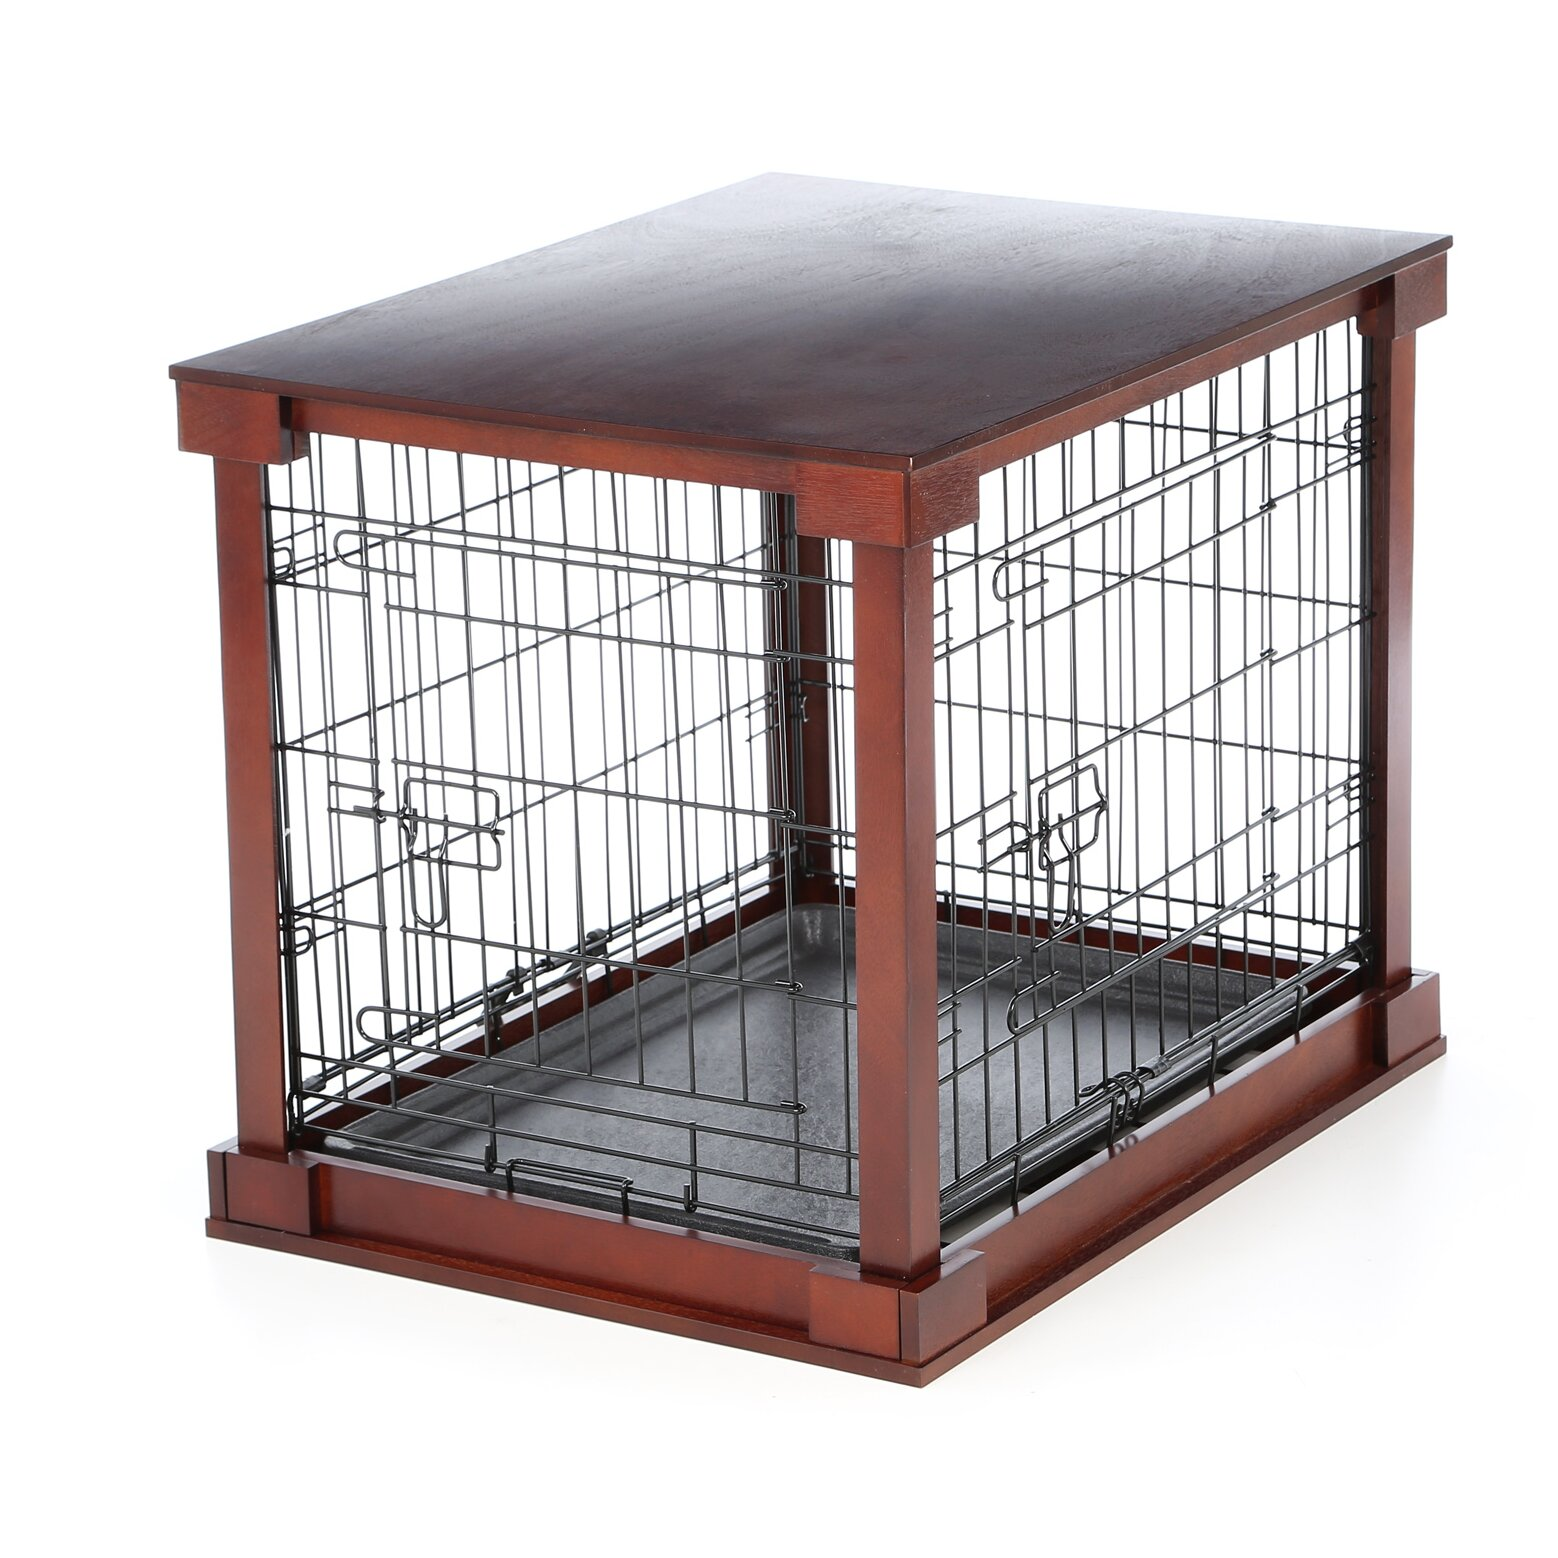 Merry Products Deluxe Pet Crate In Brown Amp Reviews Wayfair